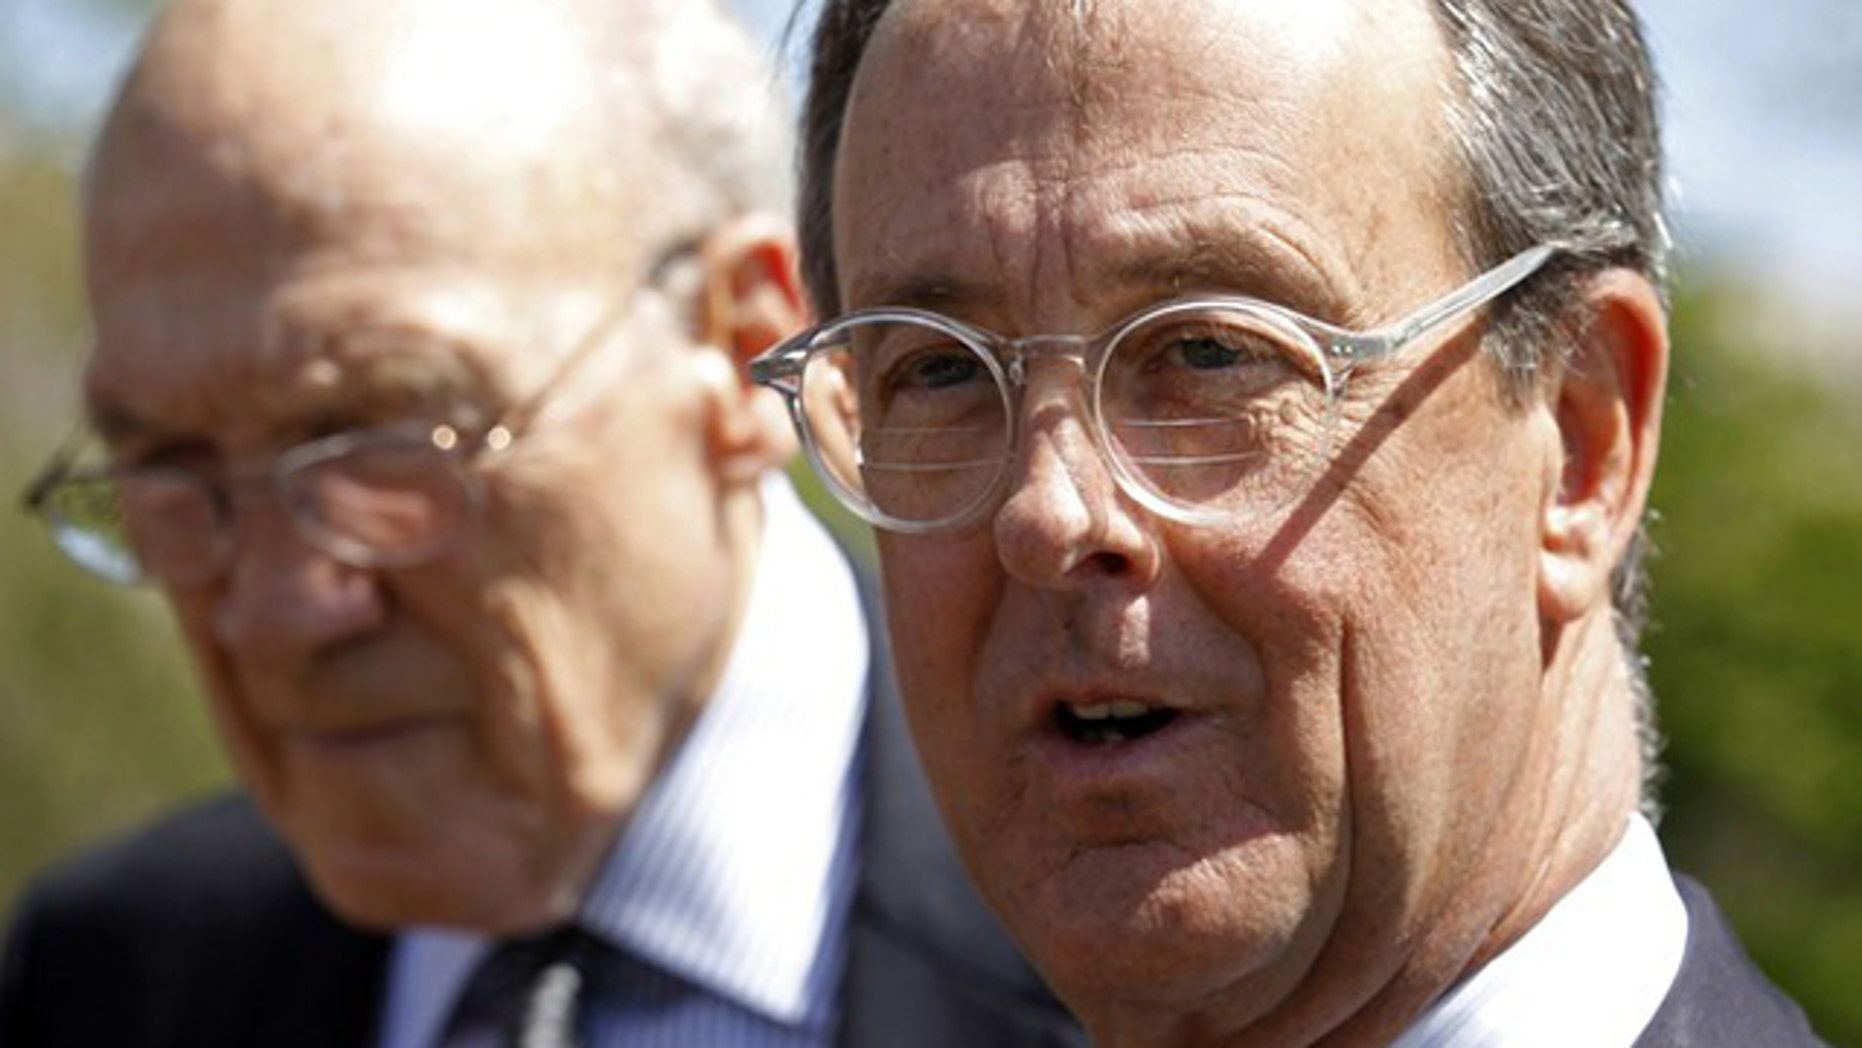 FILE: April 14, 2011: Fiscal commission co-chairs Alan Simpson, left, and Erskine Bowles speak to reporters in Washington.